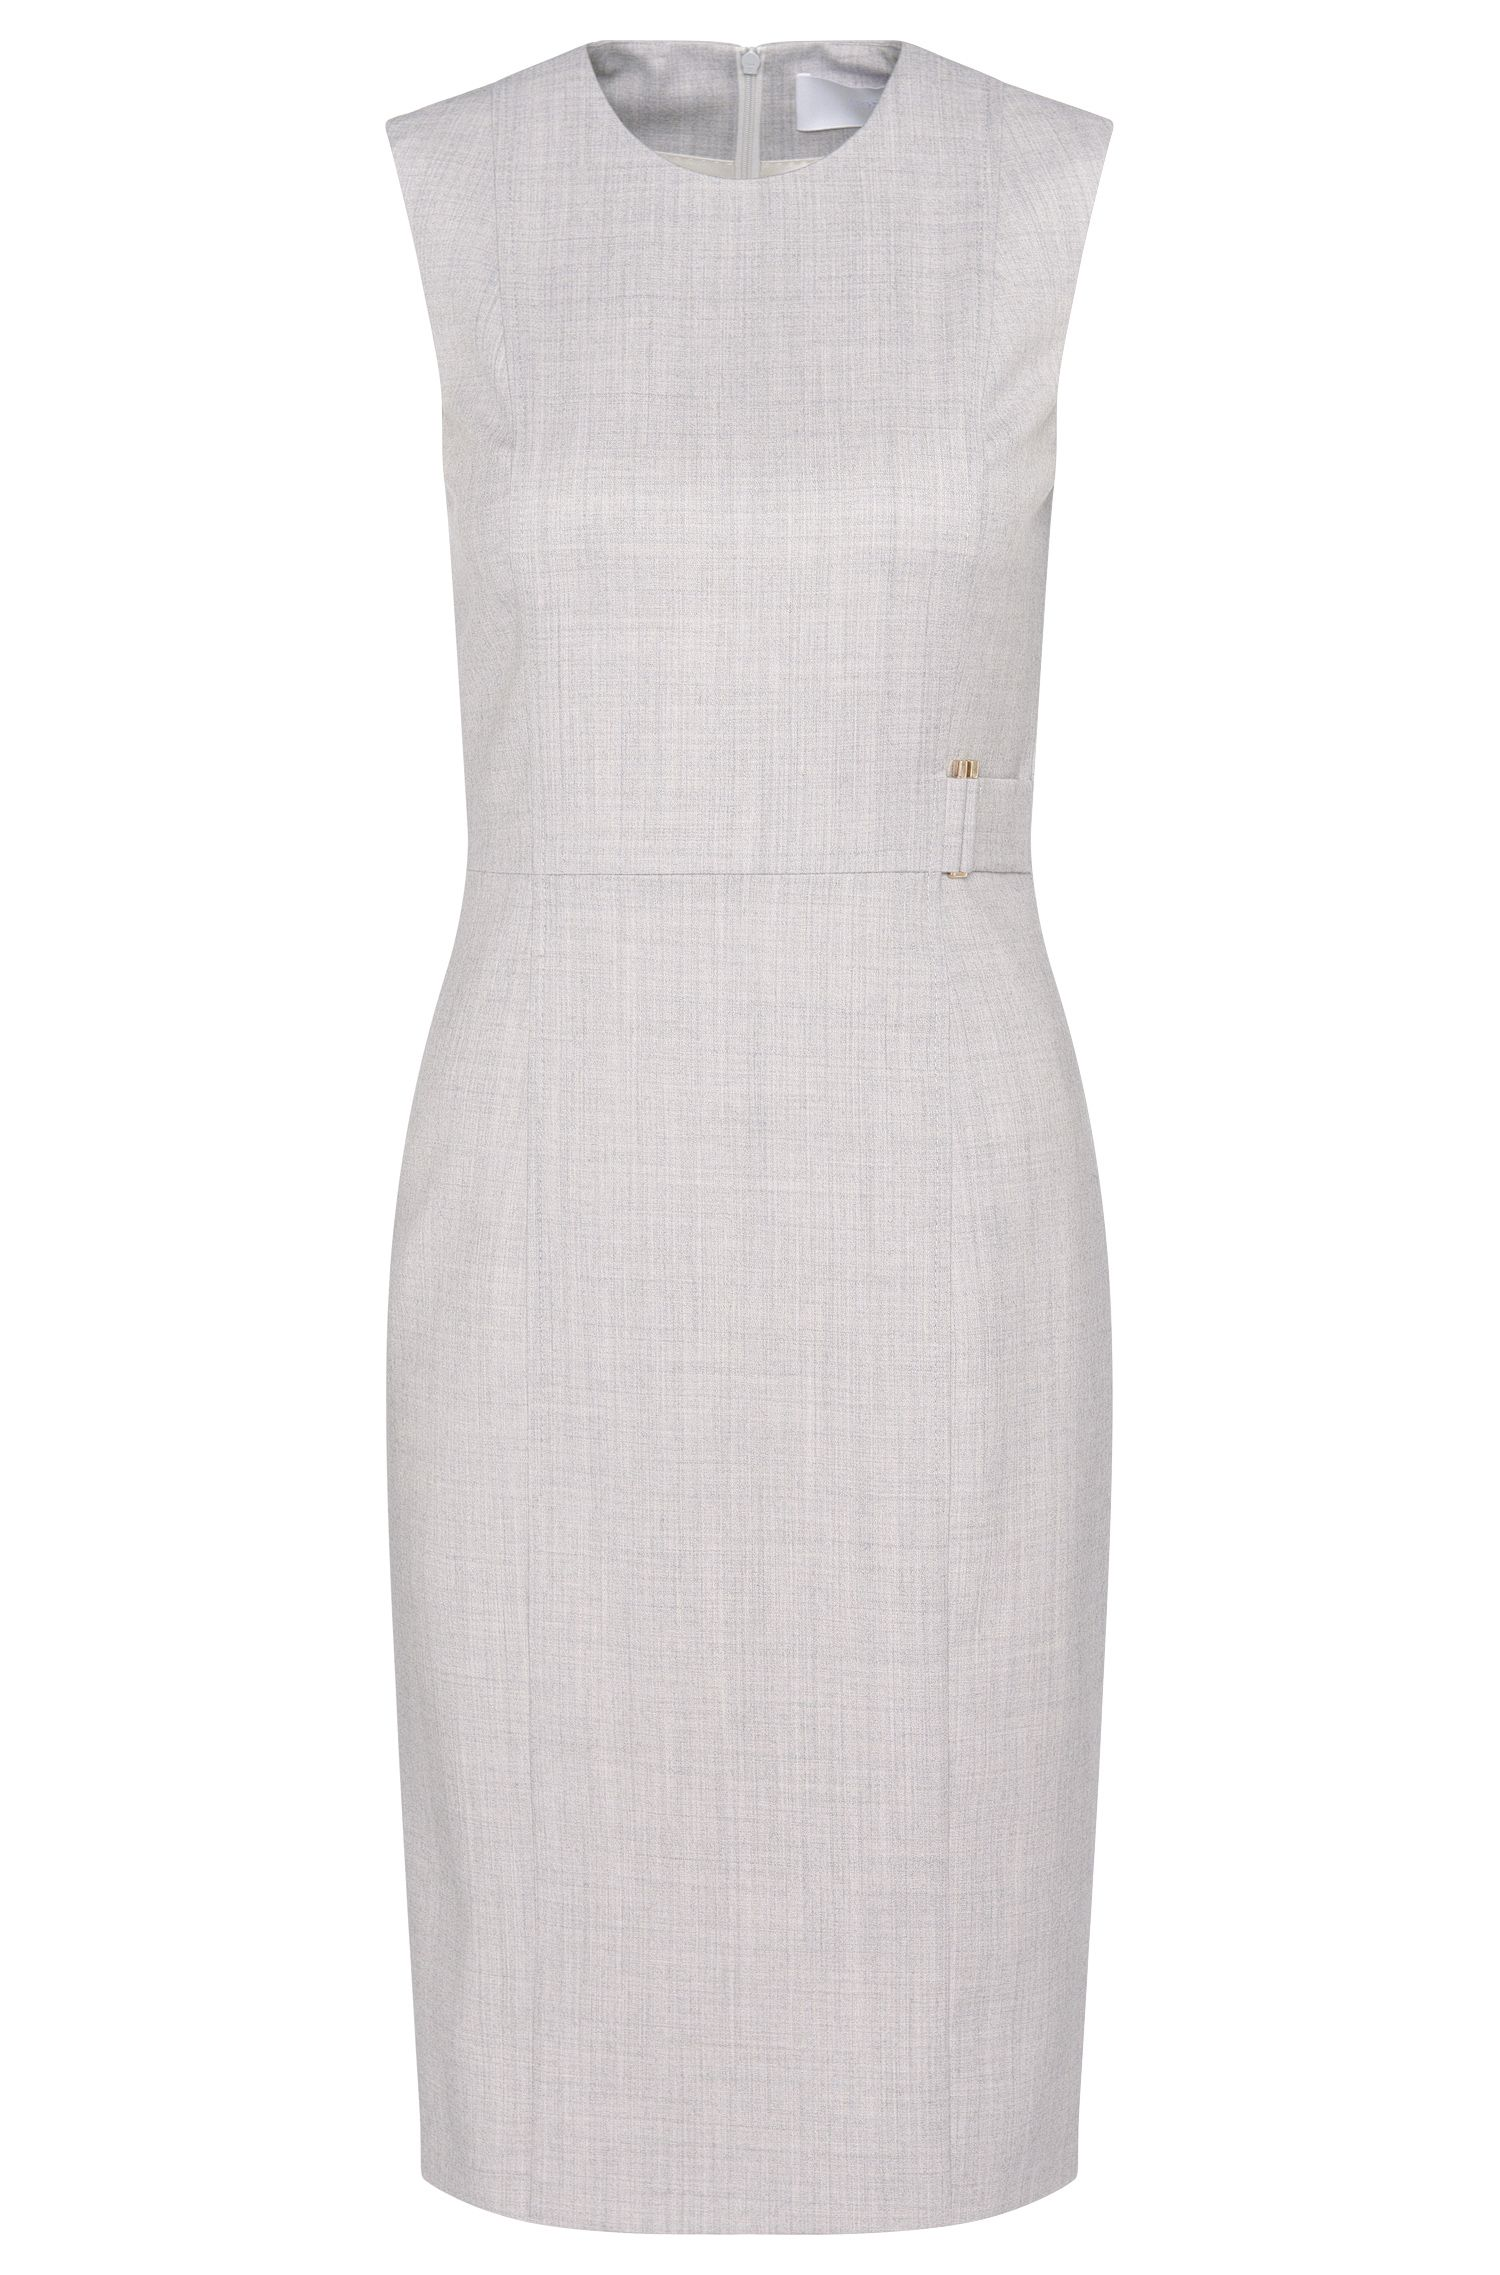 'Dyflena' | Stretch Virgin Wool Sheath Dress